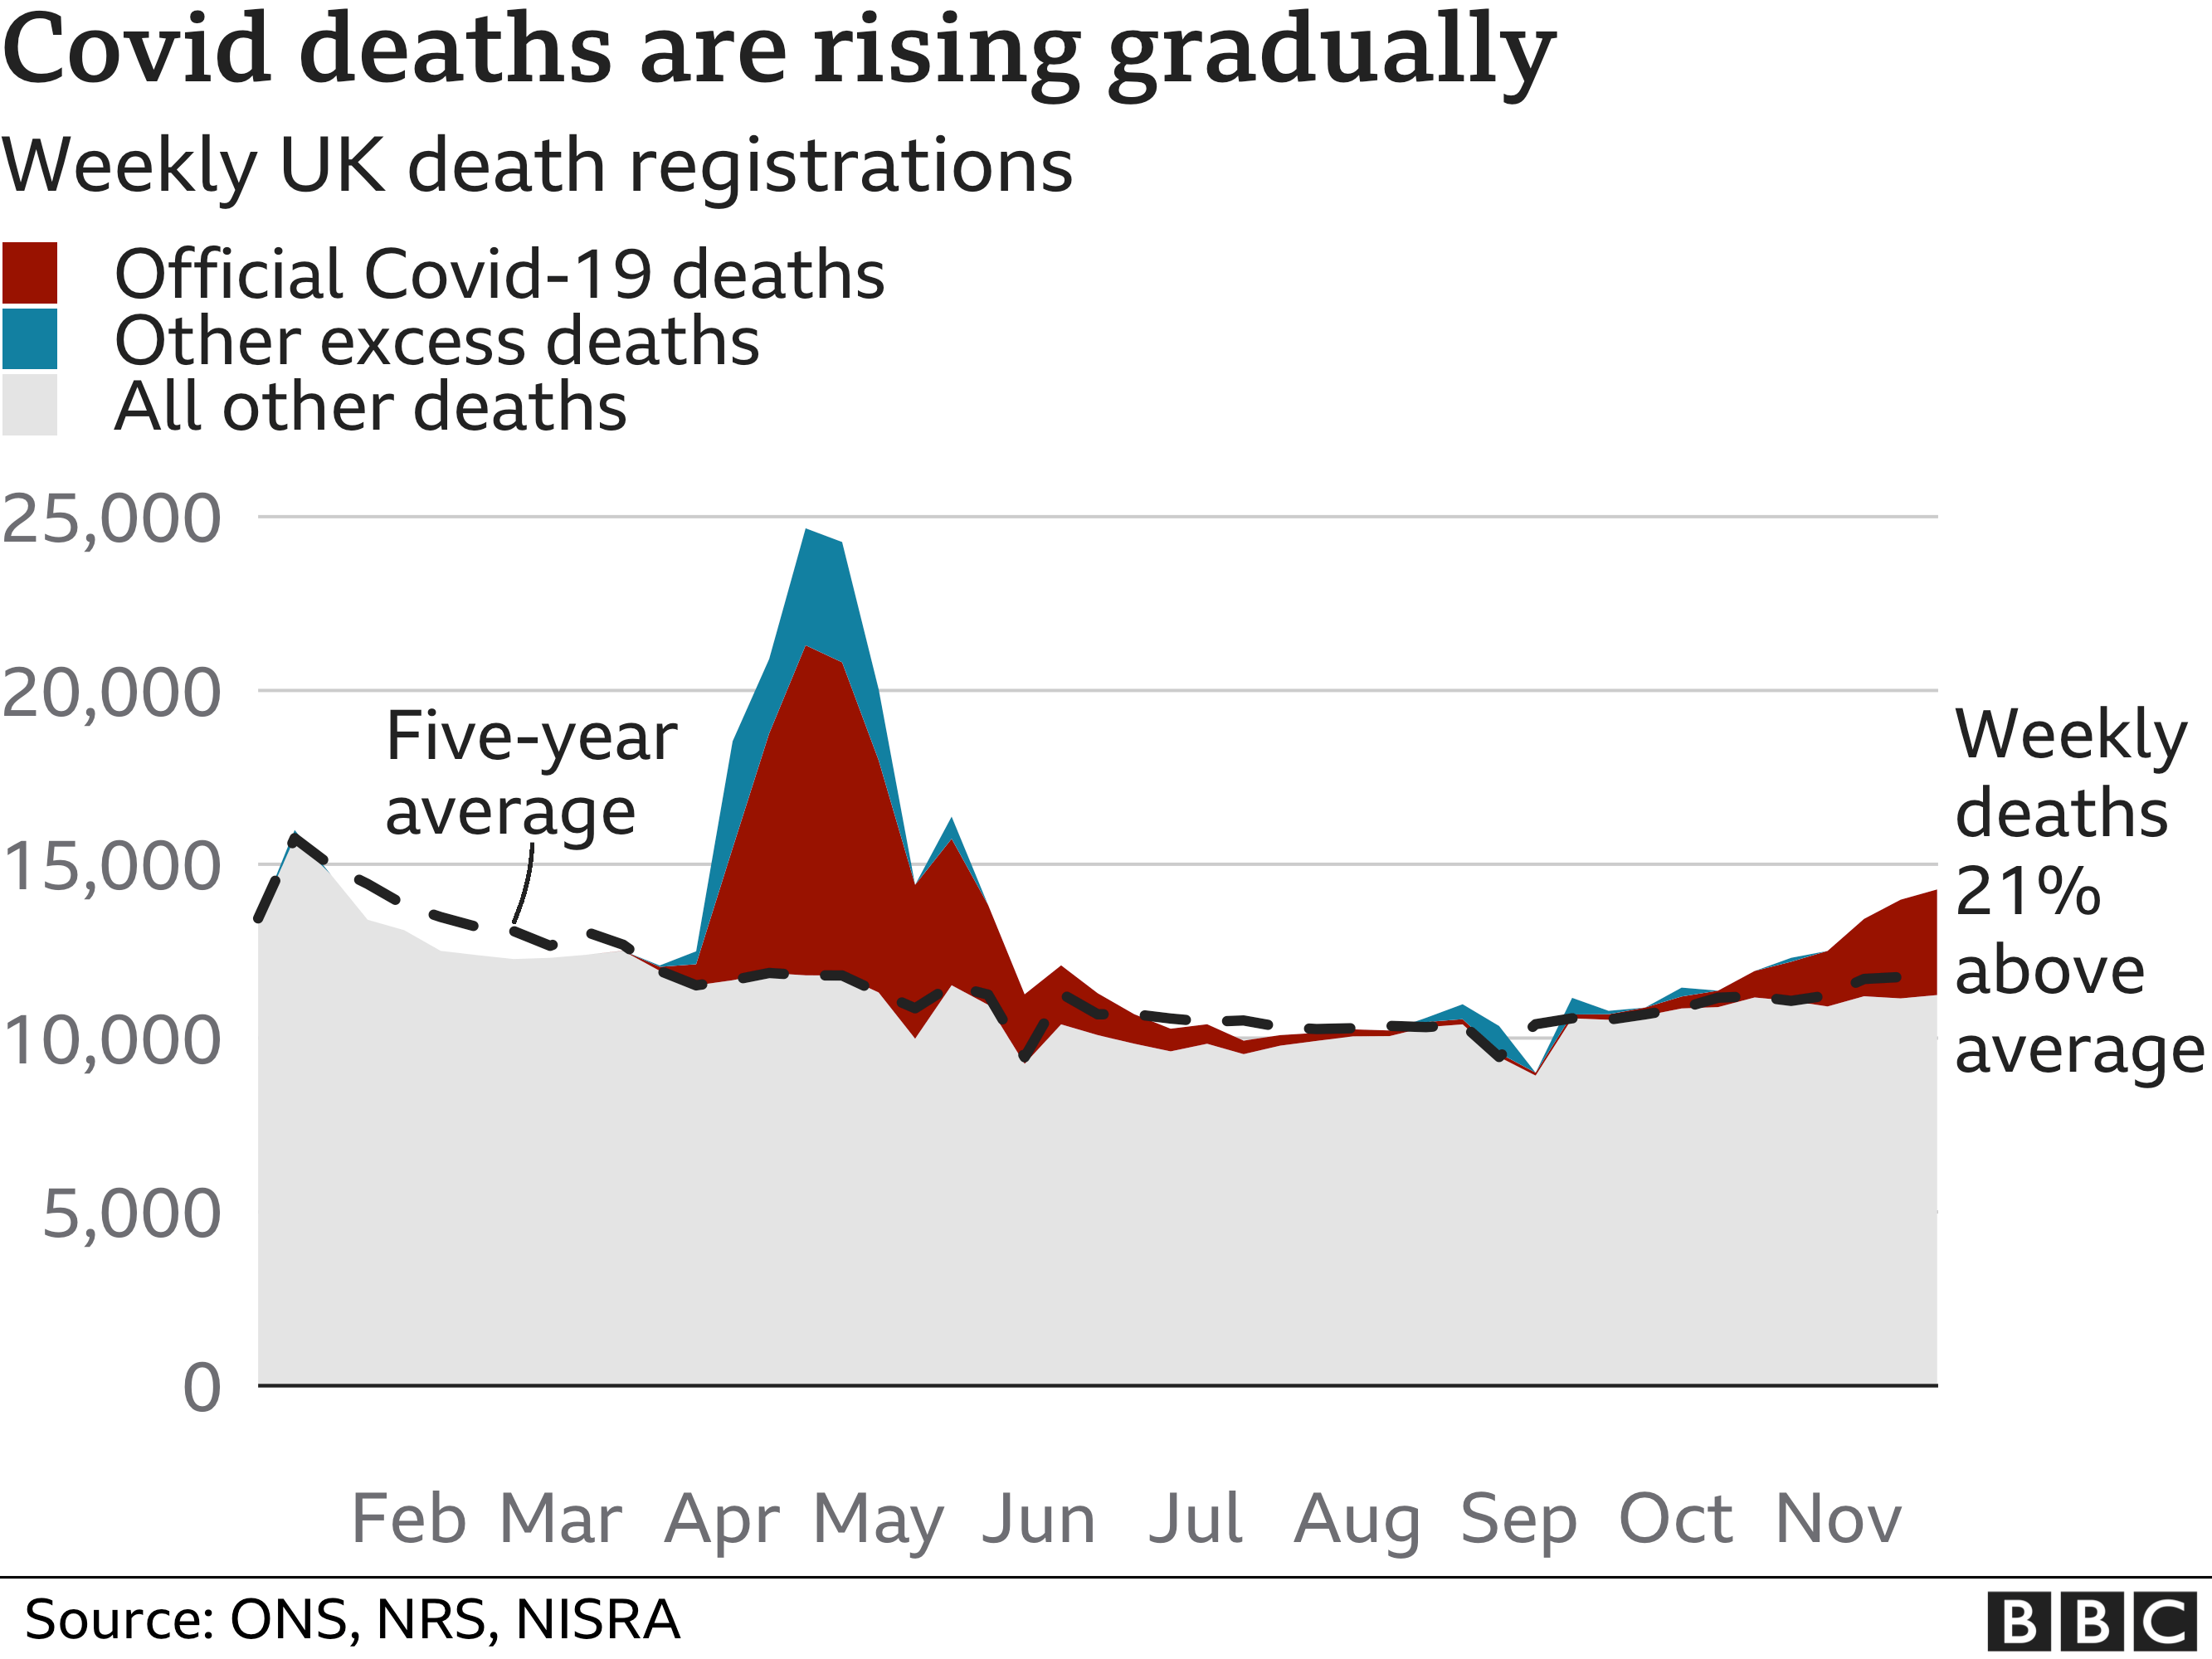 Chart shows Covid deaths are rising but slower than during the first peak of the pandemic in spring